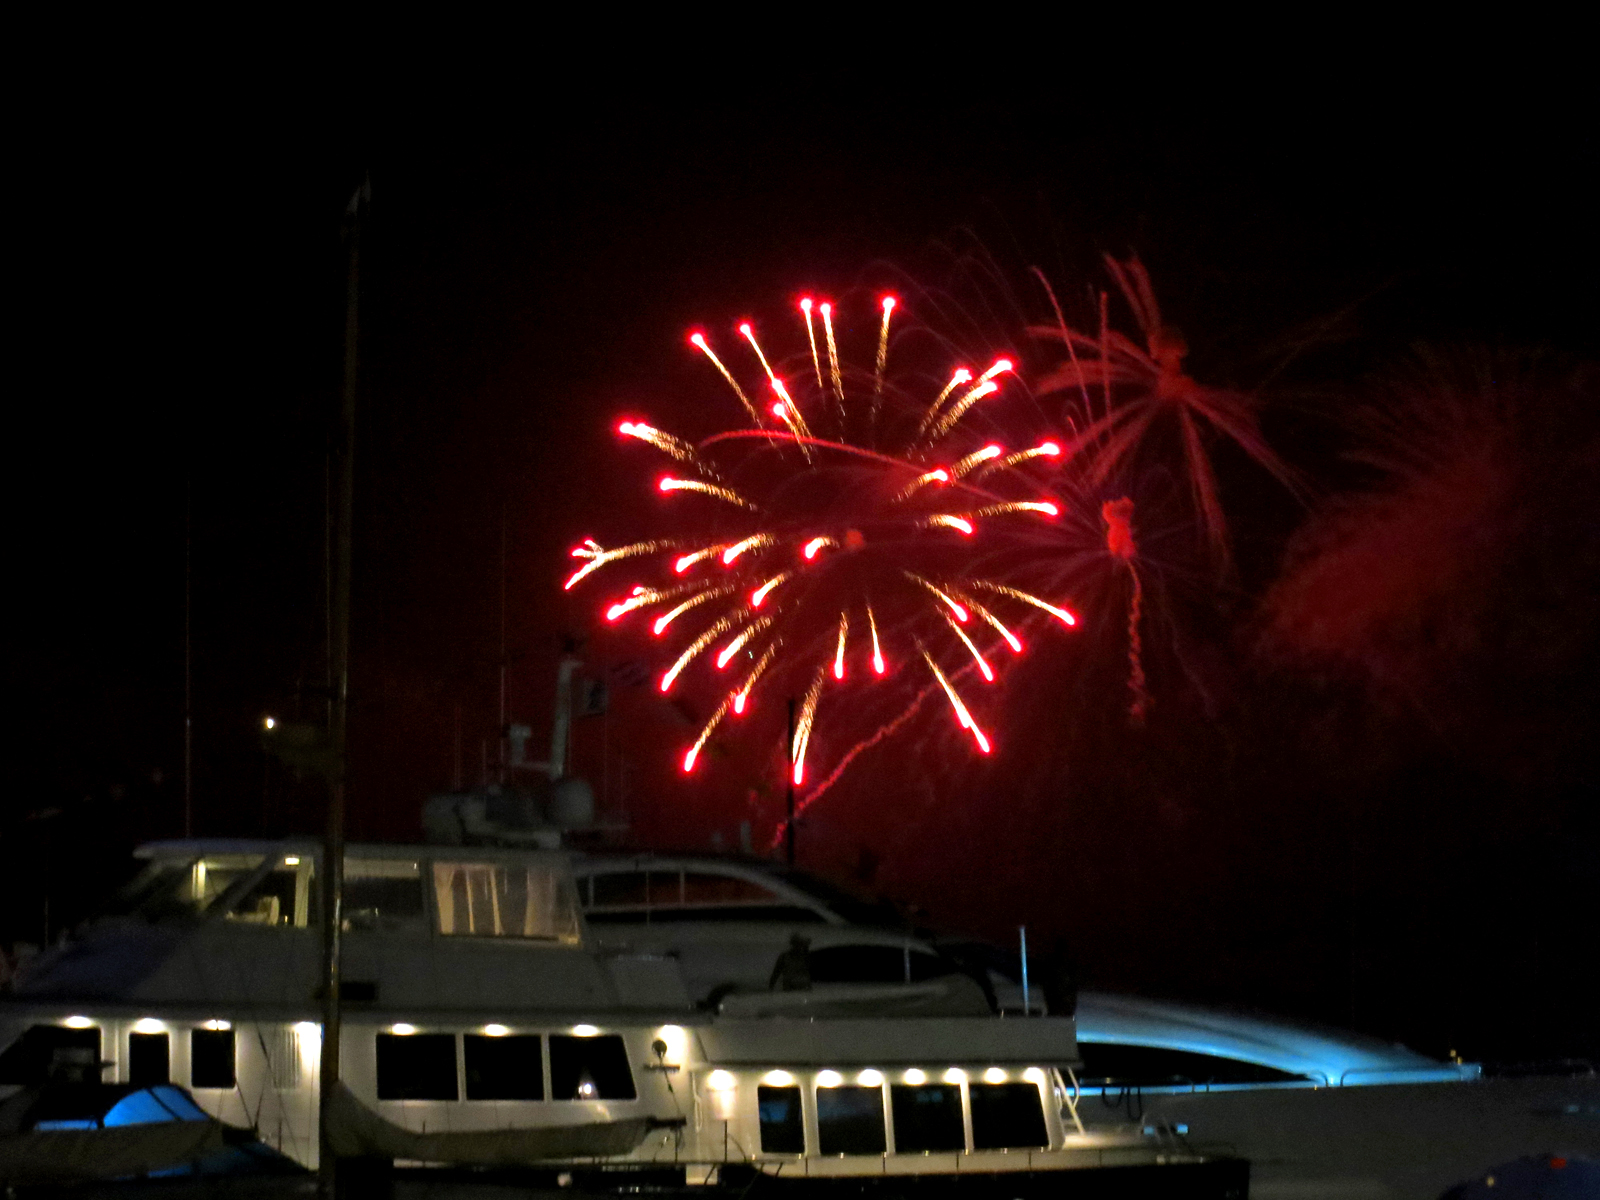 ROCKET'S RED GLARE OVER NEWPORT HARBOR - live. travel. adventure. bless. | Red and gold firework bursting over the yachts in Newport Harbor during the Independence Day fireworks display. Happy 4th of July!